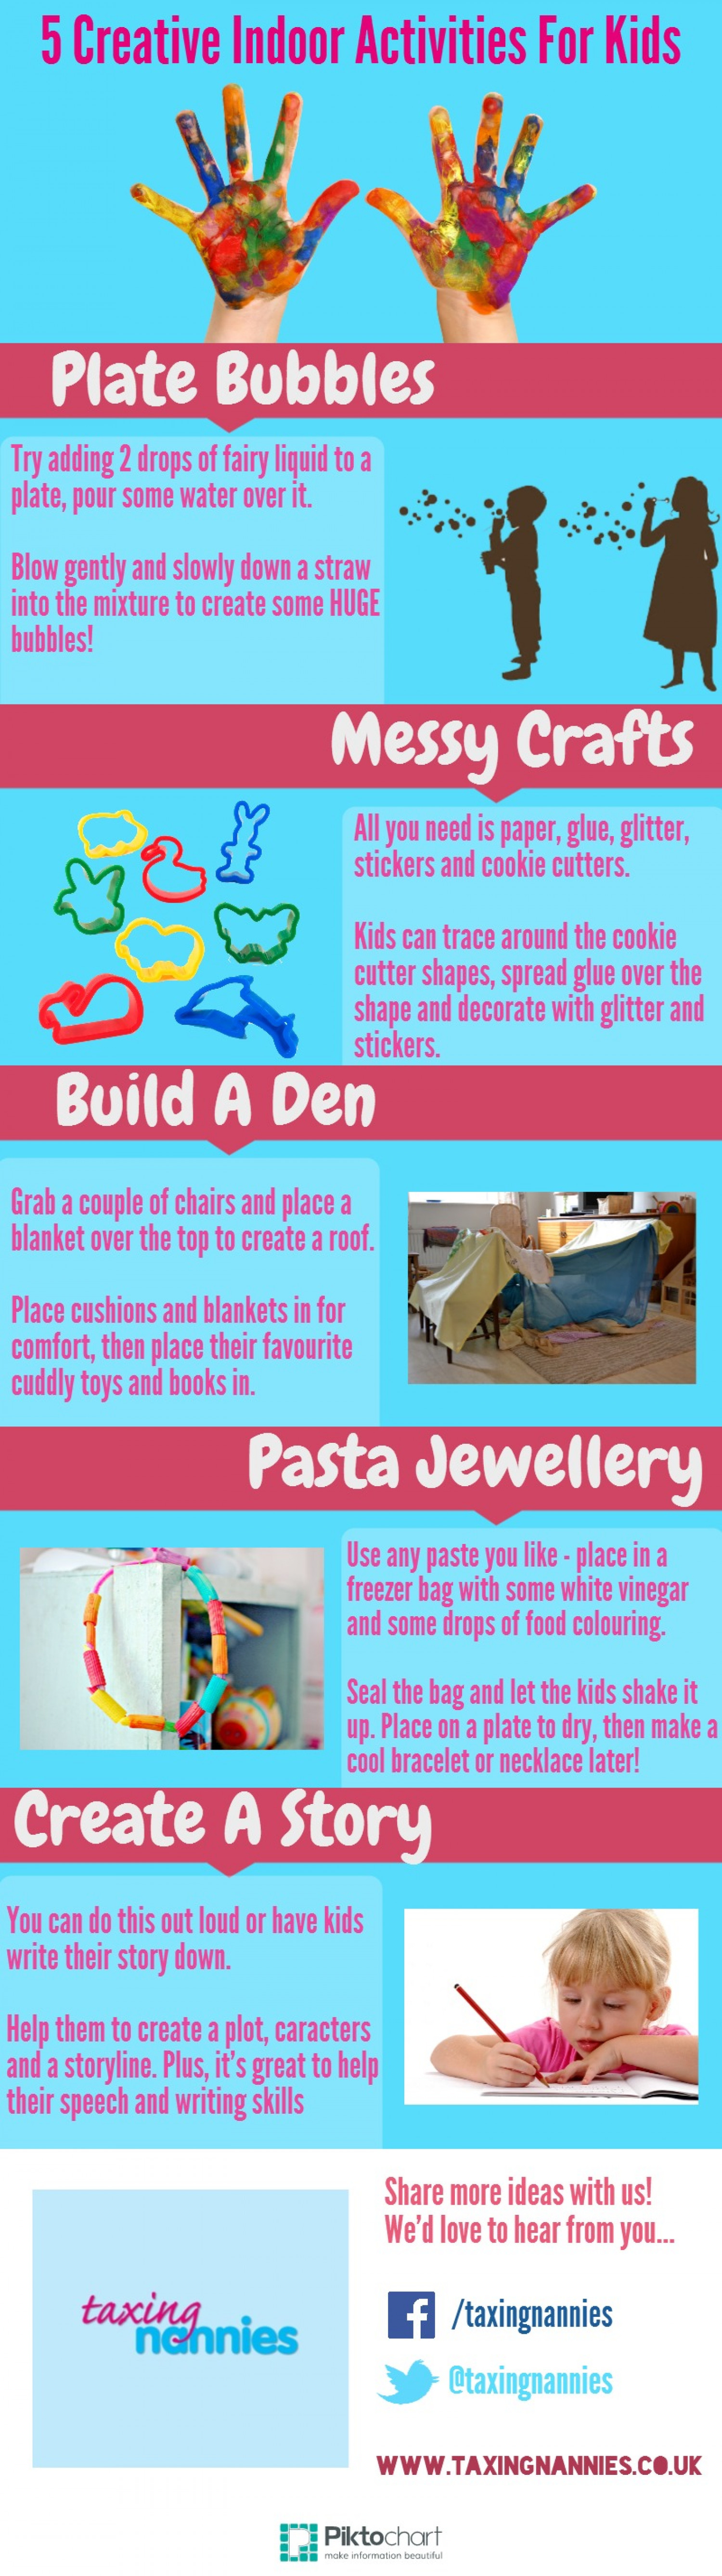 5 Creative Indoor Activities For Kids Infographic